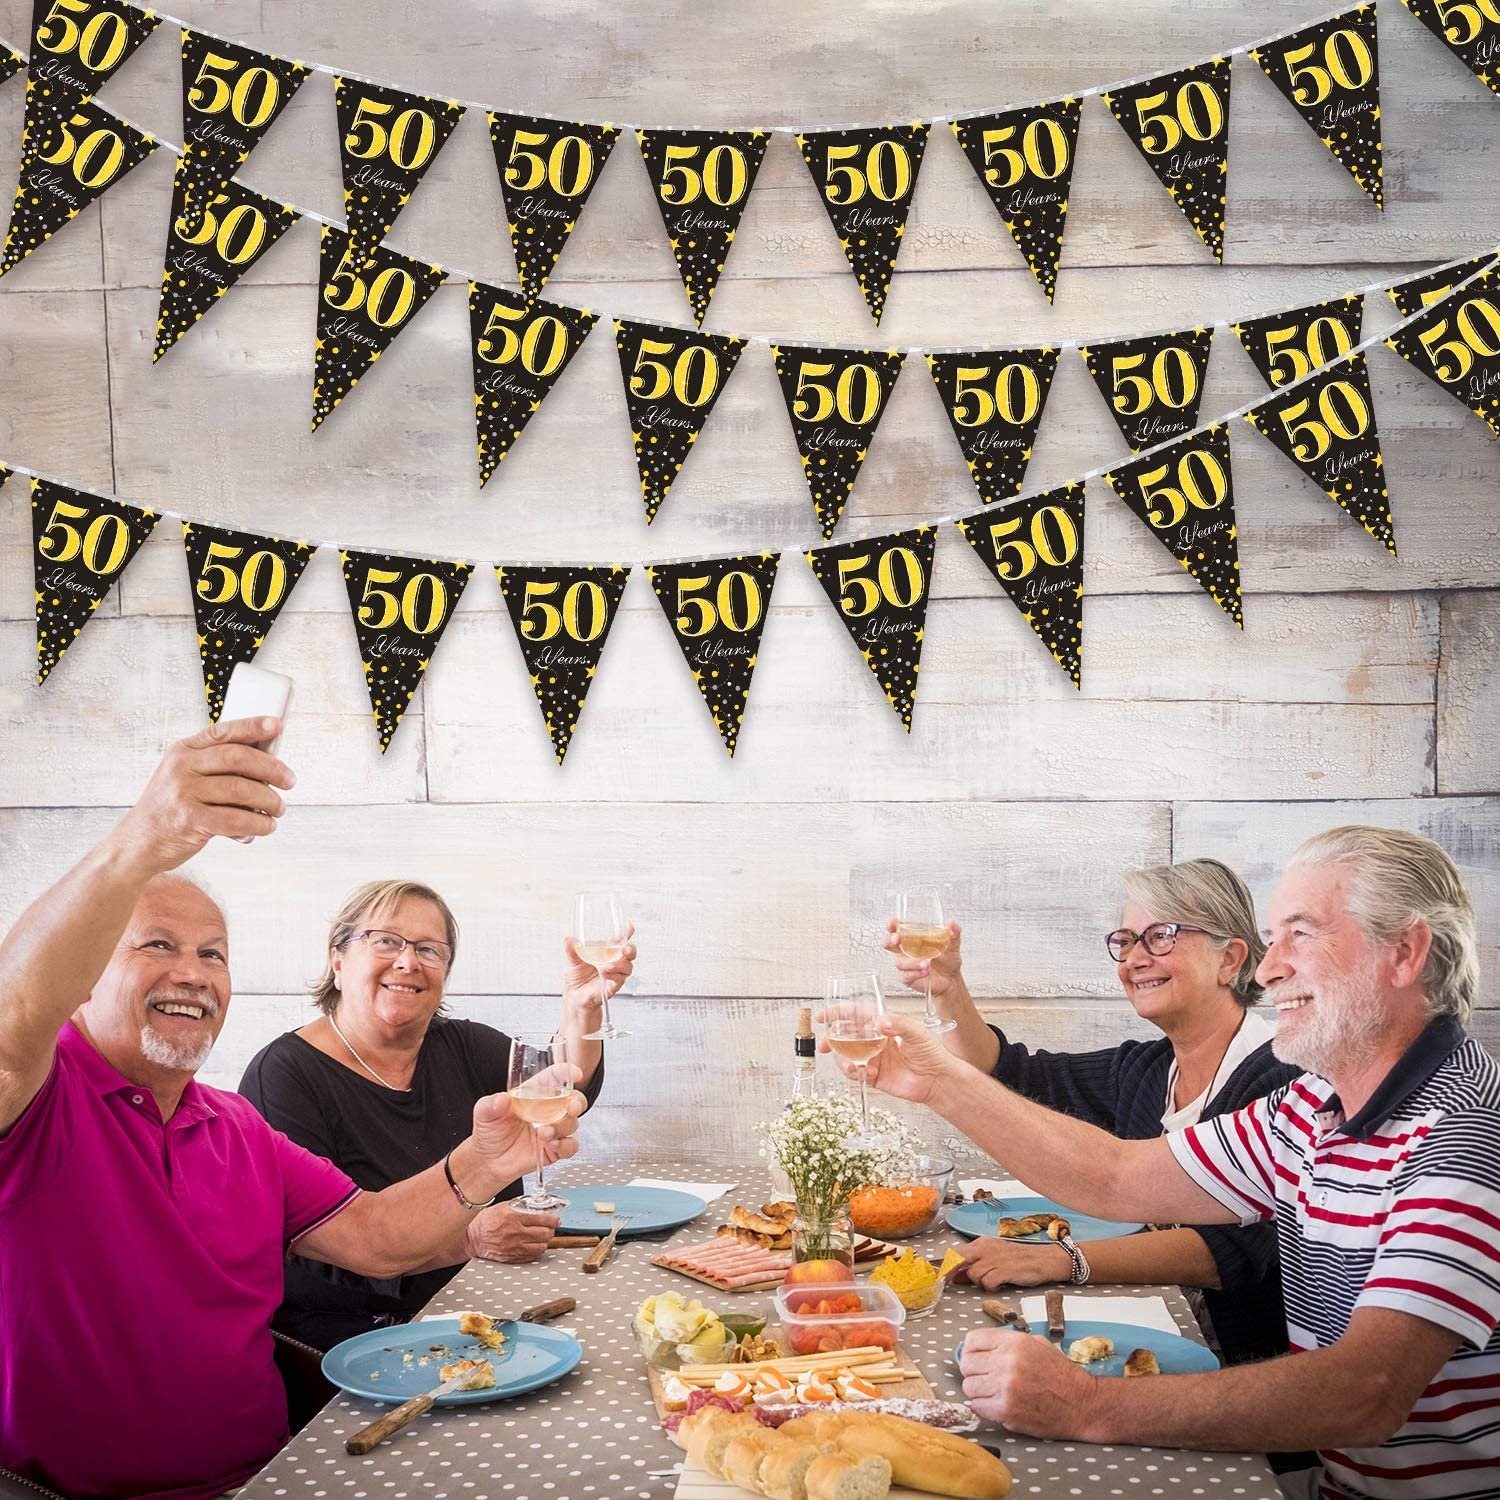 Black Golden 50 Years Banner Triangle Flag Party Accessory for 50th Birthday Wedding Anniversary Party Decoration Supplies 7.4 x 10.8 Inch 5 Pack 50th Birthday Party Decorations Pennant Banner